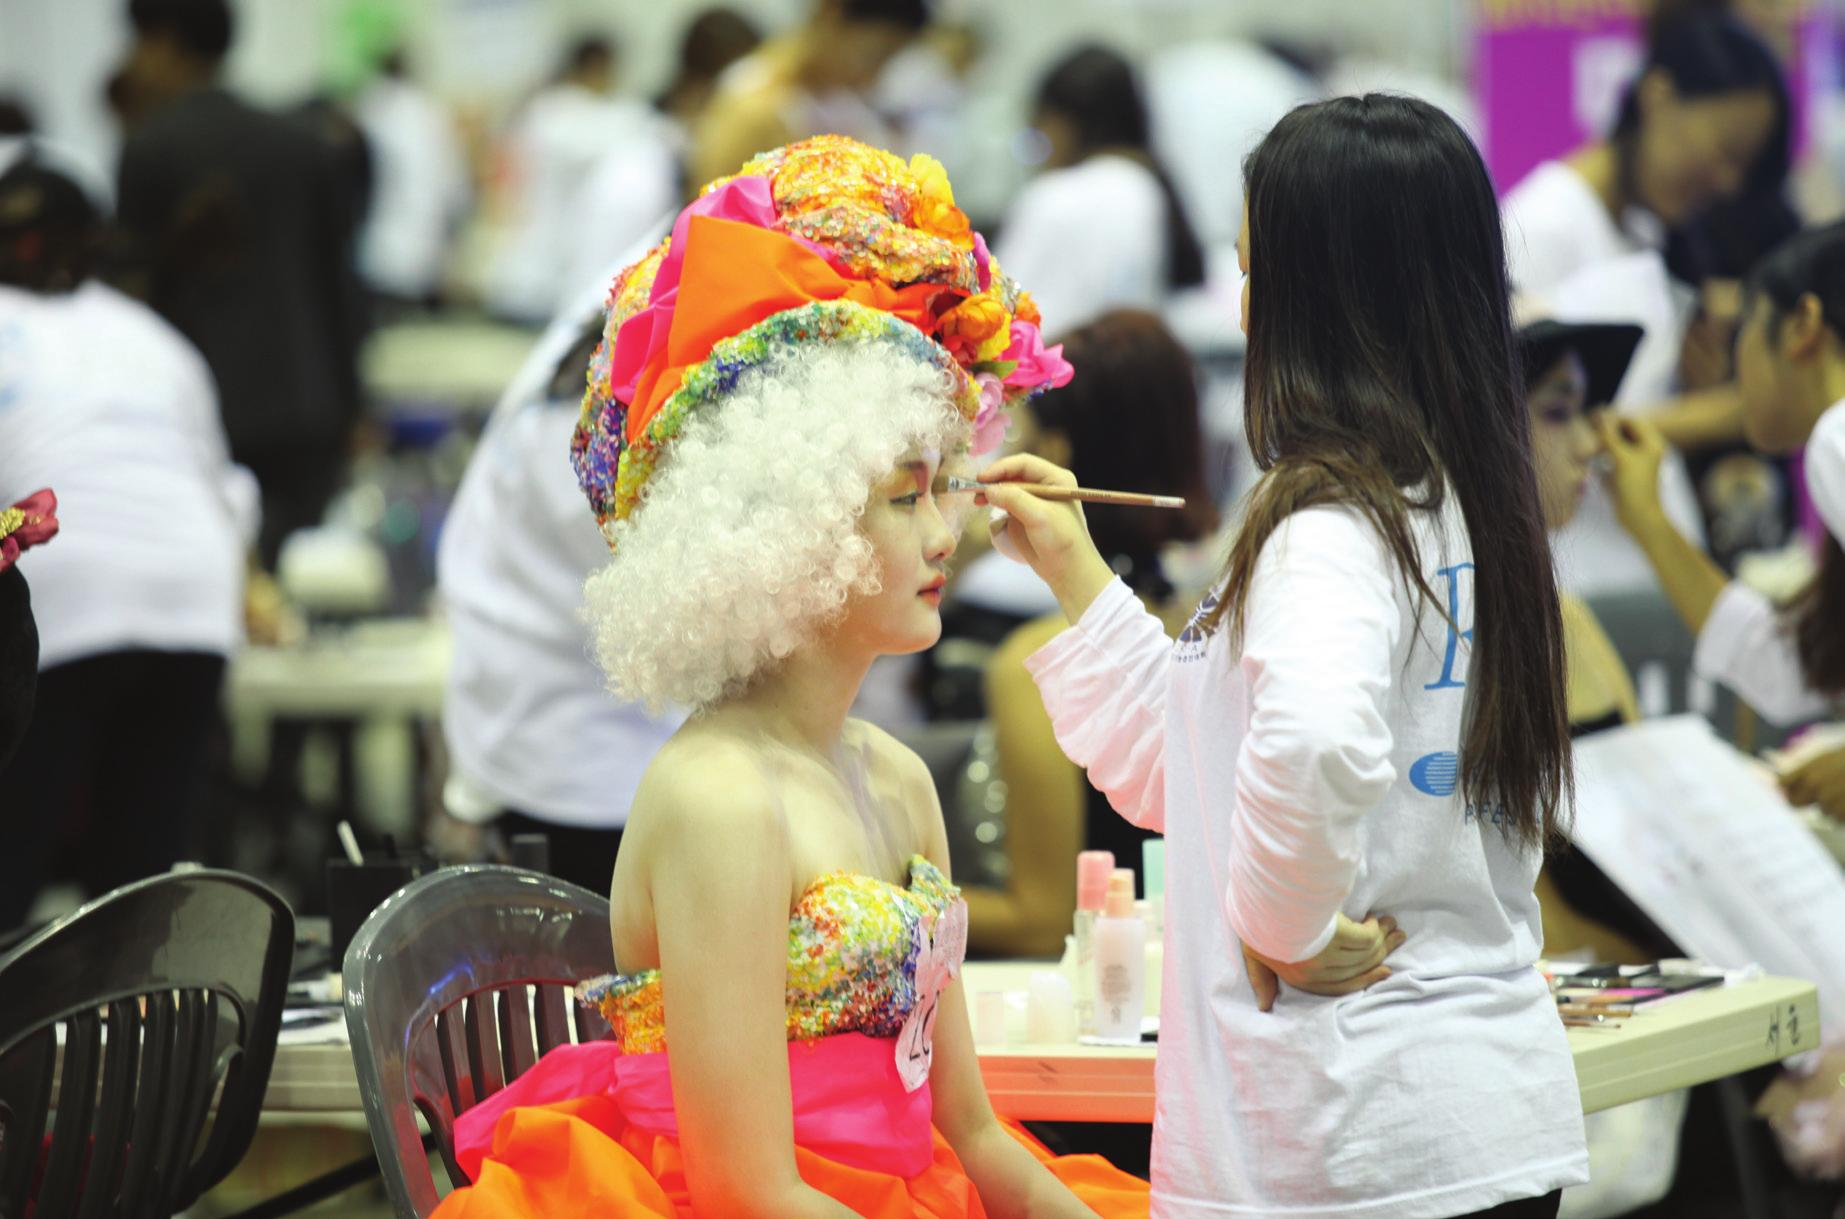 A model prepares for an event at last year's K-Beauty Expo.